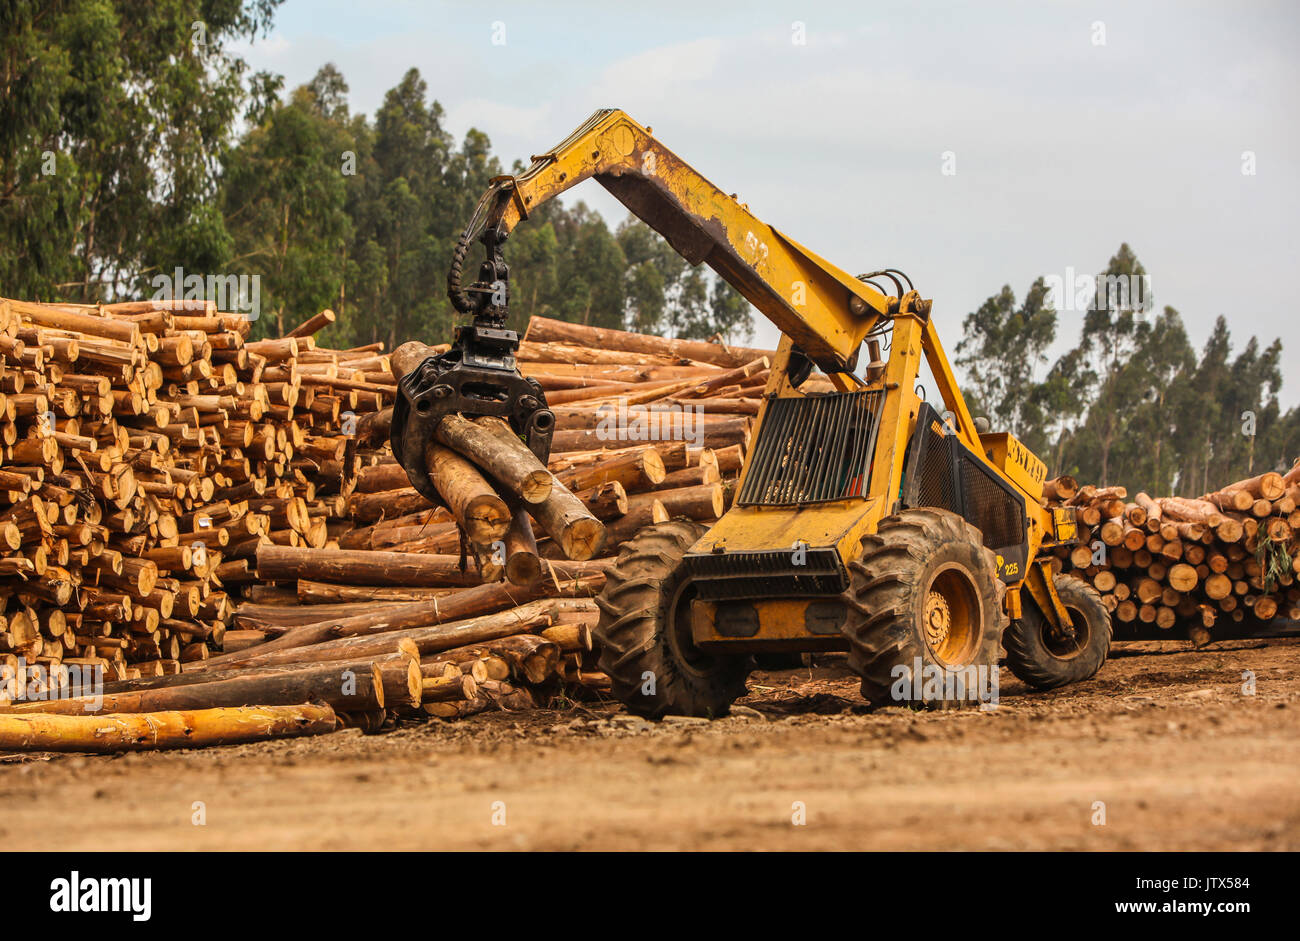 A heavy logging machine with grapple hook stacking cut logs from a